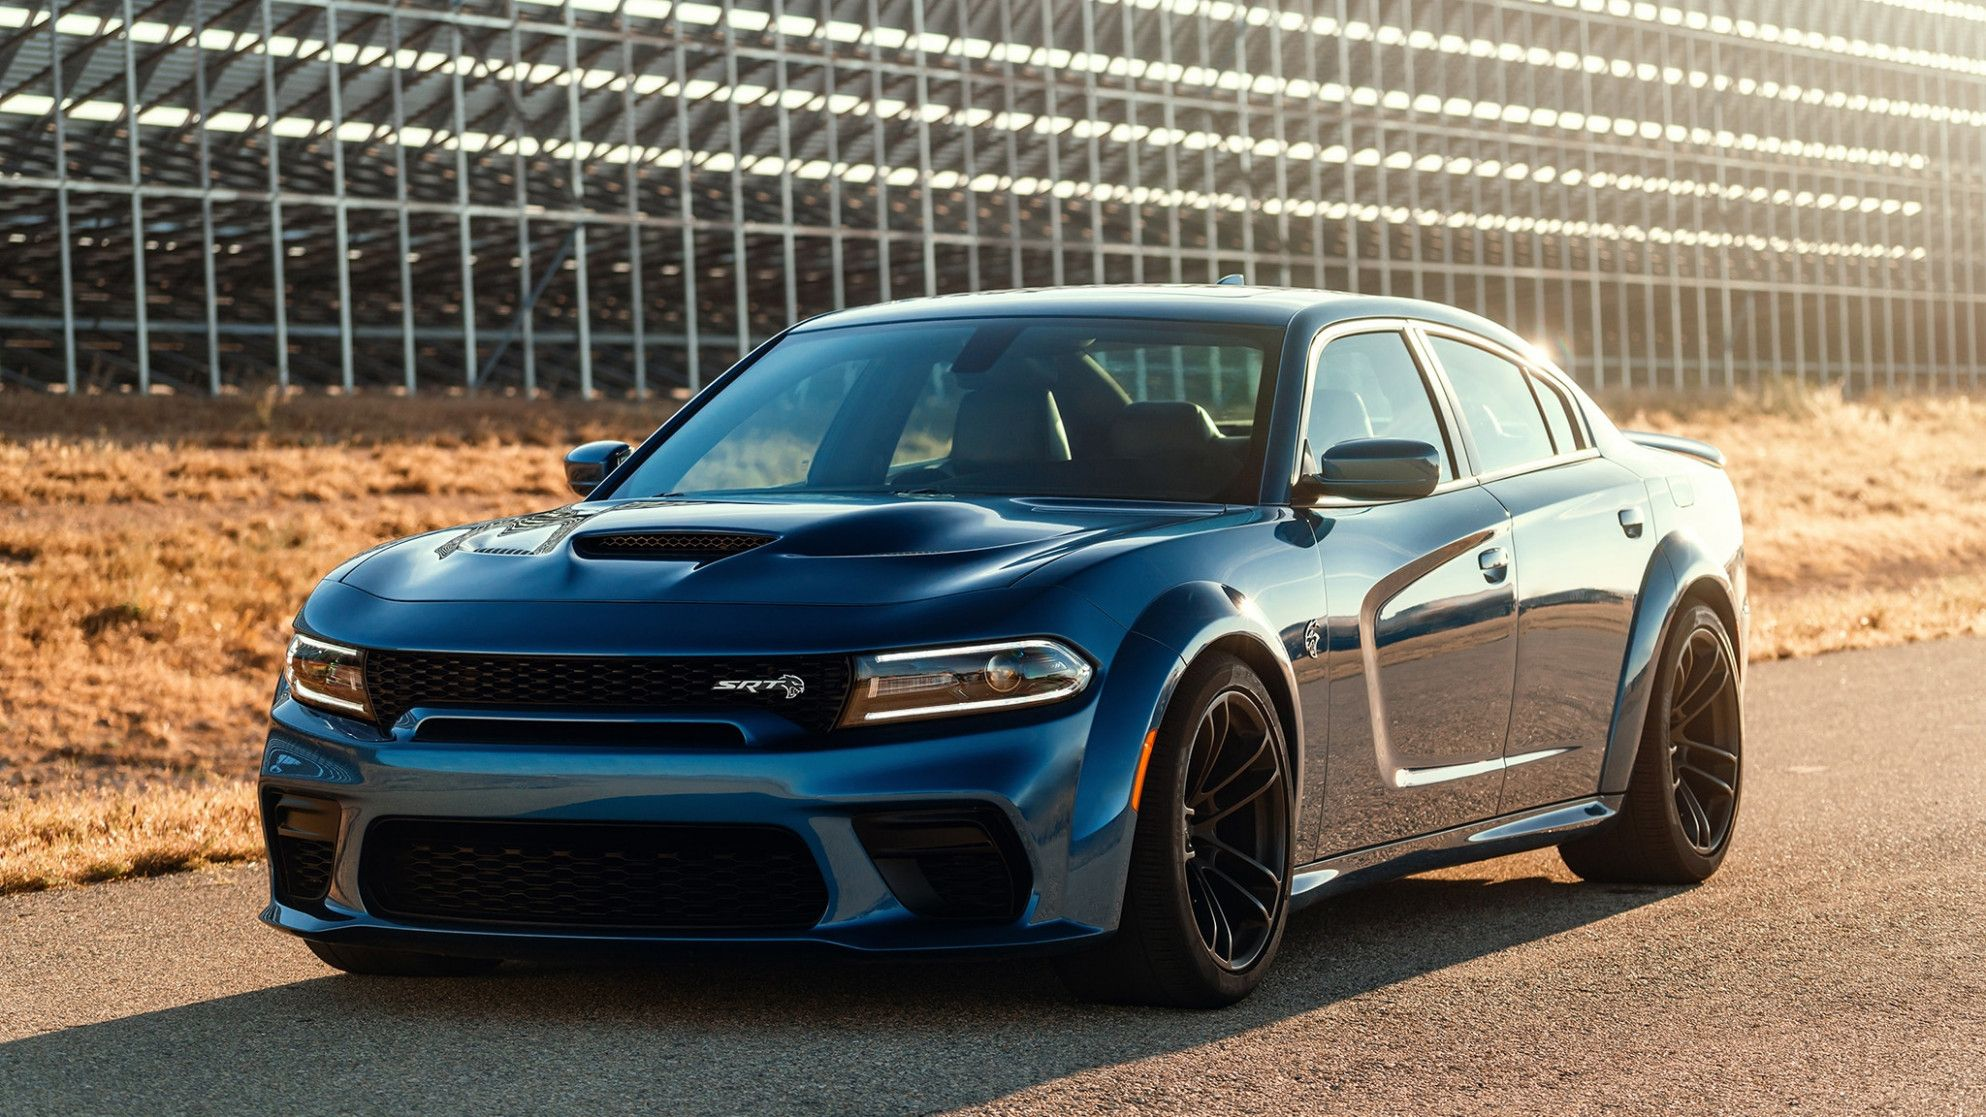 2020 Dodge Charger Photos En 2020 Voitures Musclees Voiture